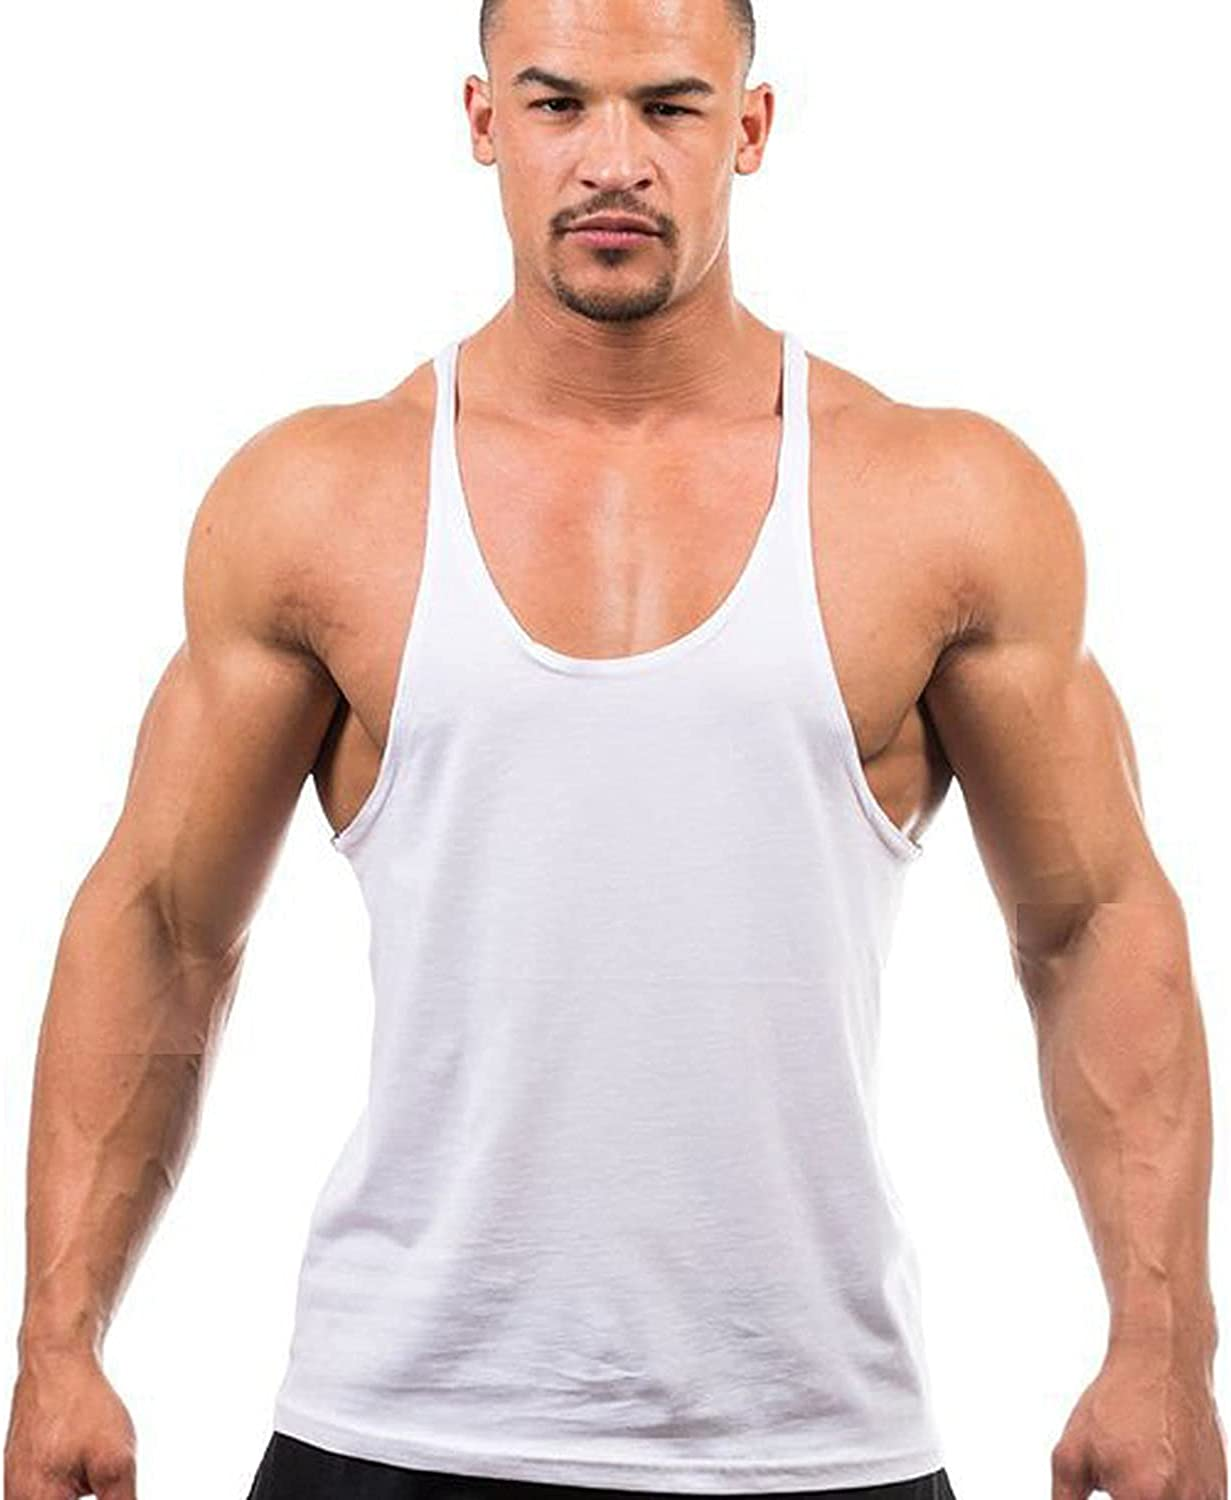 Mens Workout Stringer Tank Tops Training Chest Undershirt Bodybuilding Fitness Gym Muscle Cotton Vest Sleeveless